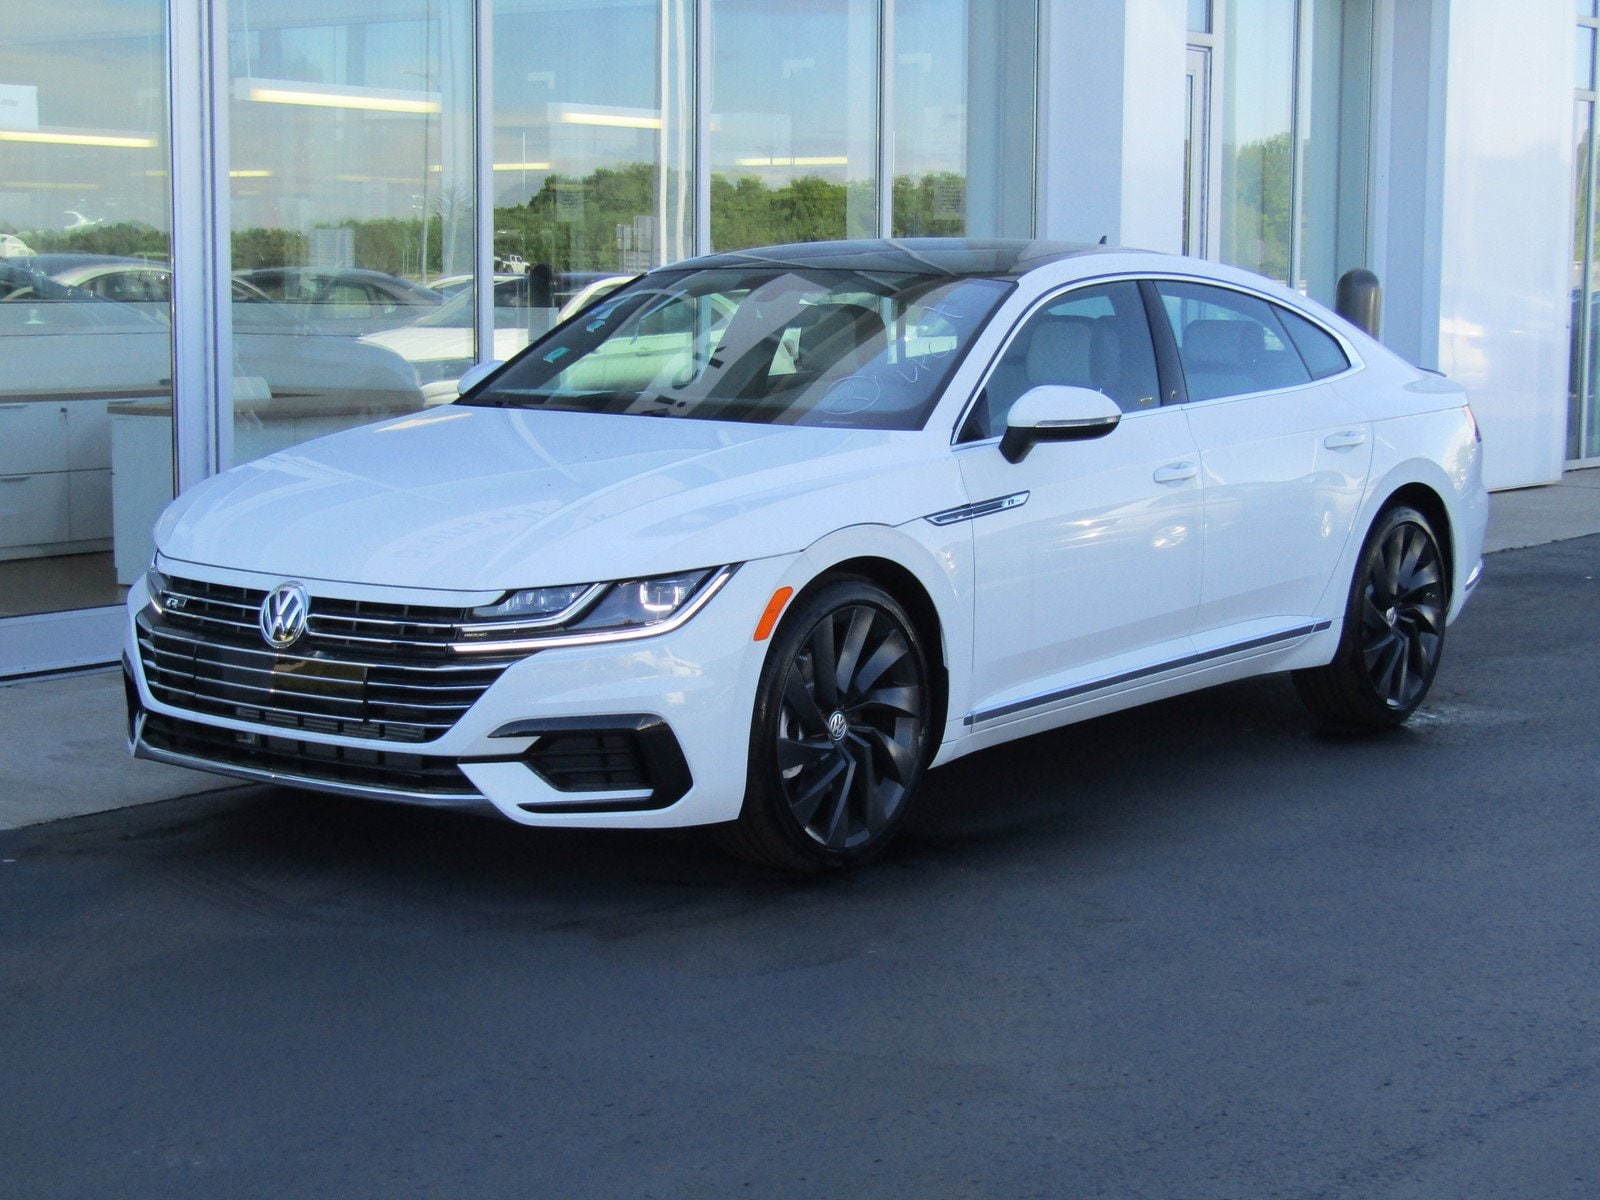 New 2020 Volkswagen Arteon 2 0t Sel R Line 4motion For Sale In Brunswick Oh Near Cleveland Akron Parma Oh Vin Wvwsr7an5le012539